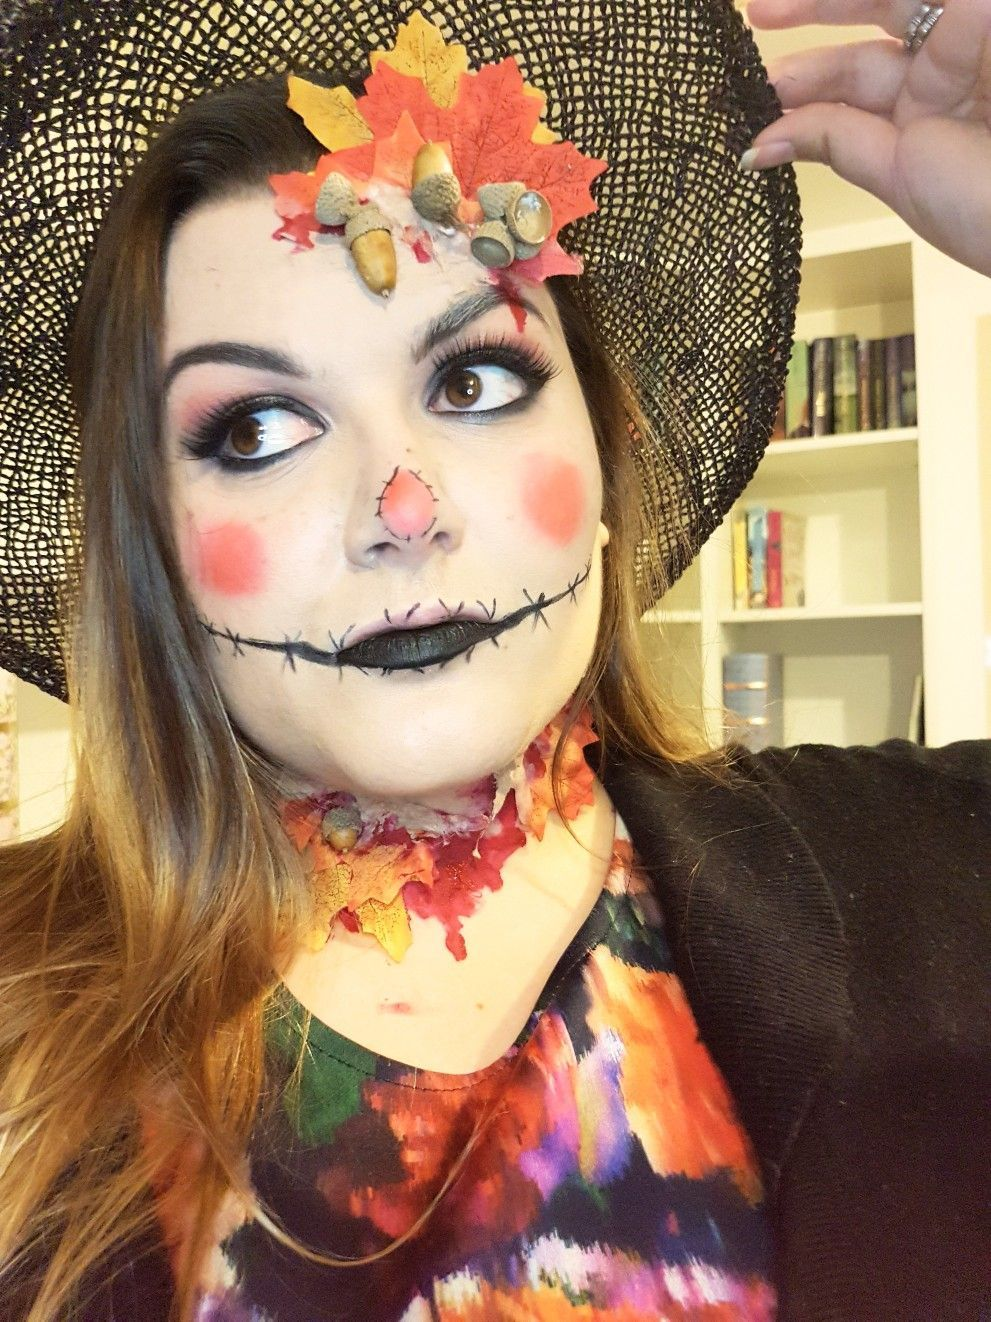 #colorfulmakeup #autumn #automne #epouvantail #scarecrow #scarecrowmakeup #artisticmakeup  #halloween #maquillage #makeup #lfl #f4f #love #instagood #tbt #photooftheday #makeupartist #epouvantaildeguisement #colorfulmakeup #autumn #automne #epouvantail #scarecrow #scarecrowmakeup #artisticmakeup  #halloween #maquillage #makeup #lfl #f4f #love #instagood #tbt #photooftheday #makeupartist #epouvantaildeguisement